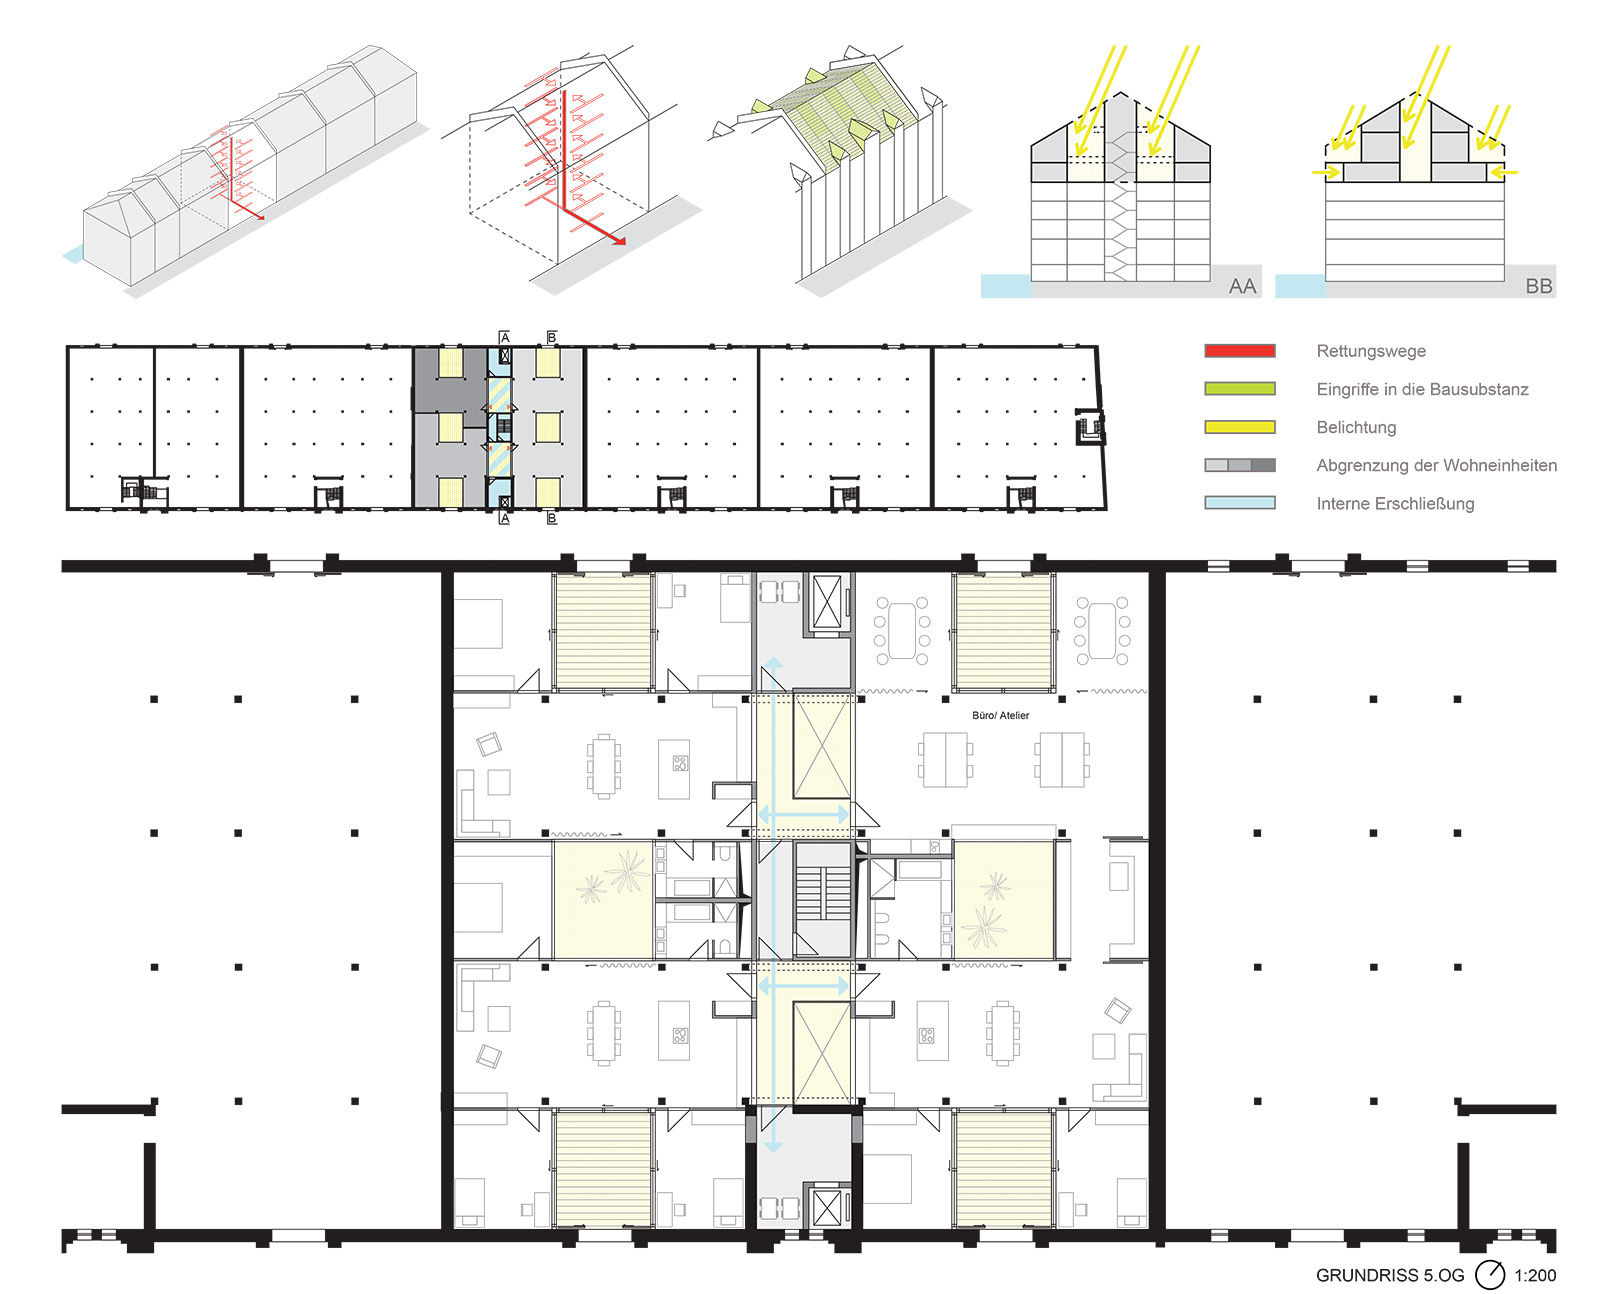 120110_186 Layout.indd